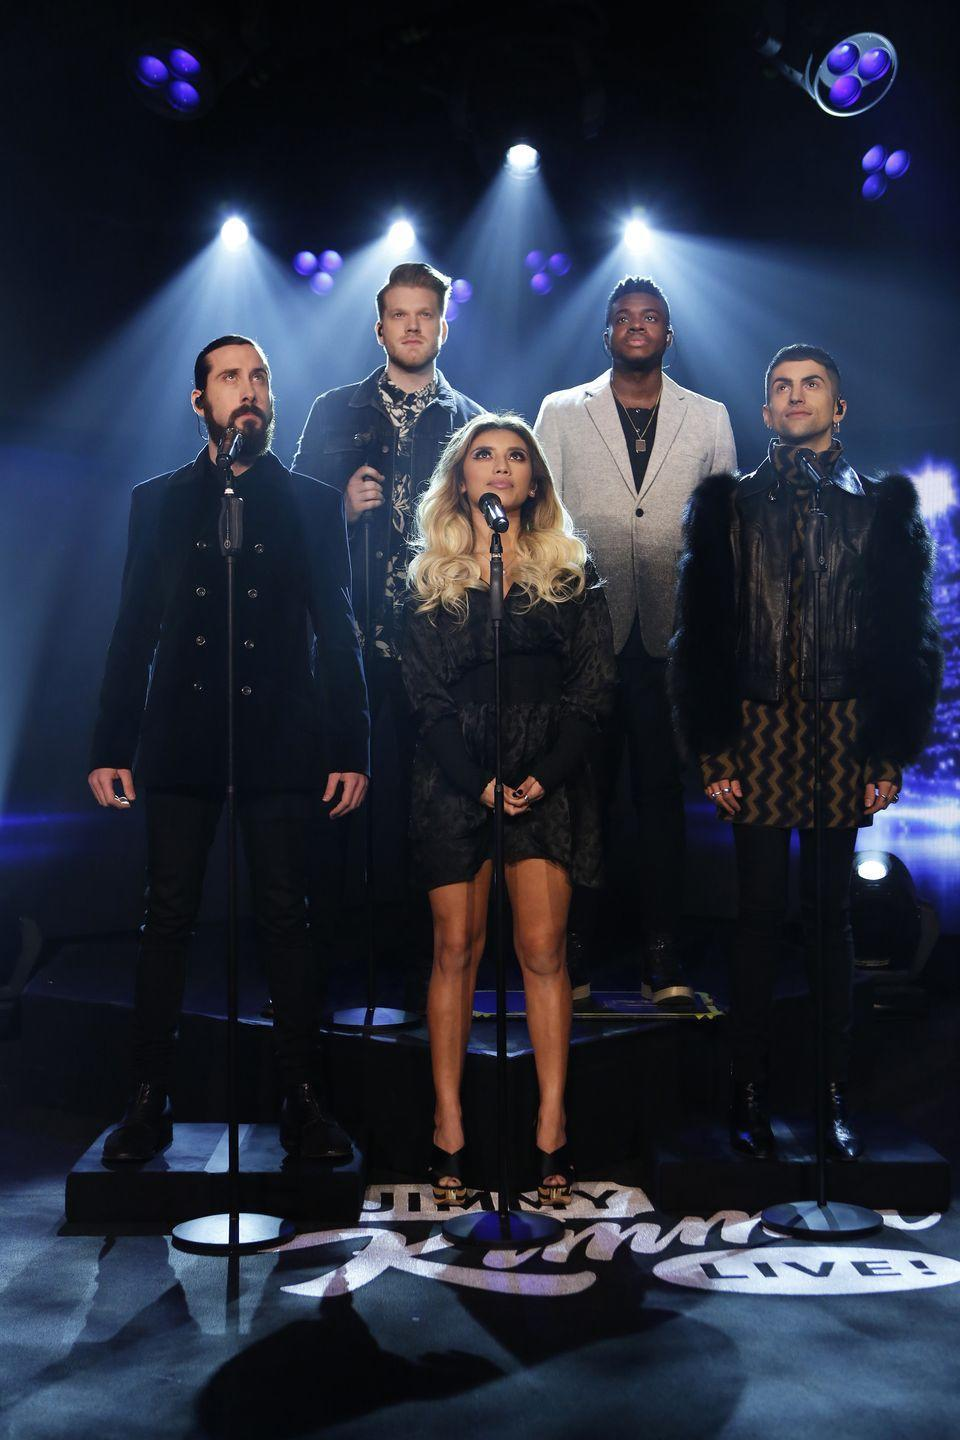 """<p>Opt for a more modern take on this holiday classic with this version by the talented a cappella group Pentatonix, which won NBC's a cappella competition show <em>The Sing-Off </em>in 2011.</p><p><a class=""""link rapid-noclick-resp"""" href=""""https://www.amazon.com/O-Holy-Night/dp/B00KAYYOQC/?tag=syn-yahoo-20&ascsubtag=%5Bartid%7C10055.g.2680%5Bsrc%7Cyahoo-us"""" rel=""""nofollow noopener"""" target=""""_blank"""" data-ylk=""""slk:AMAZON"""">AMAZON</a> <a class=""""link rapid-noclick-resp"""" href=""""https://go.redirectingat.com?id=74968X1596630&url=https%3A%2F%2Fitunes.apple.com%2Fus%2Falbum%2Fo-holy-night%2F877653086&sref=https%3A%2F%2Fwww.goodhousekeeping.com%2Fholidays%2Fchristmas-ideas%2Fg2680%2Fchristmas-songs%2F"""" rel=""""nofollow noopener"""" target=""""_blank"""" data-ylk=""""slk:ITUNES"""">ITUNES</a></p>"""